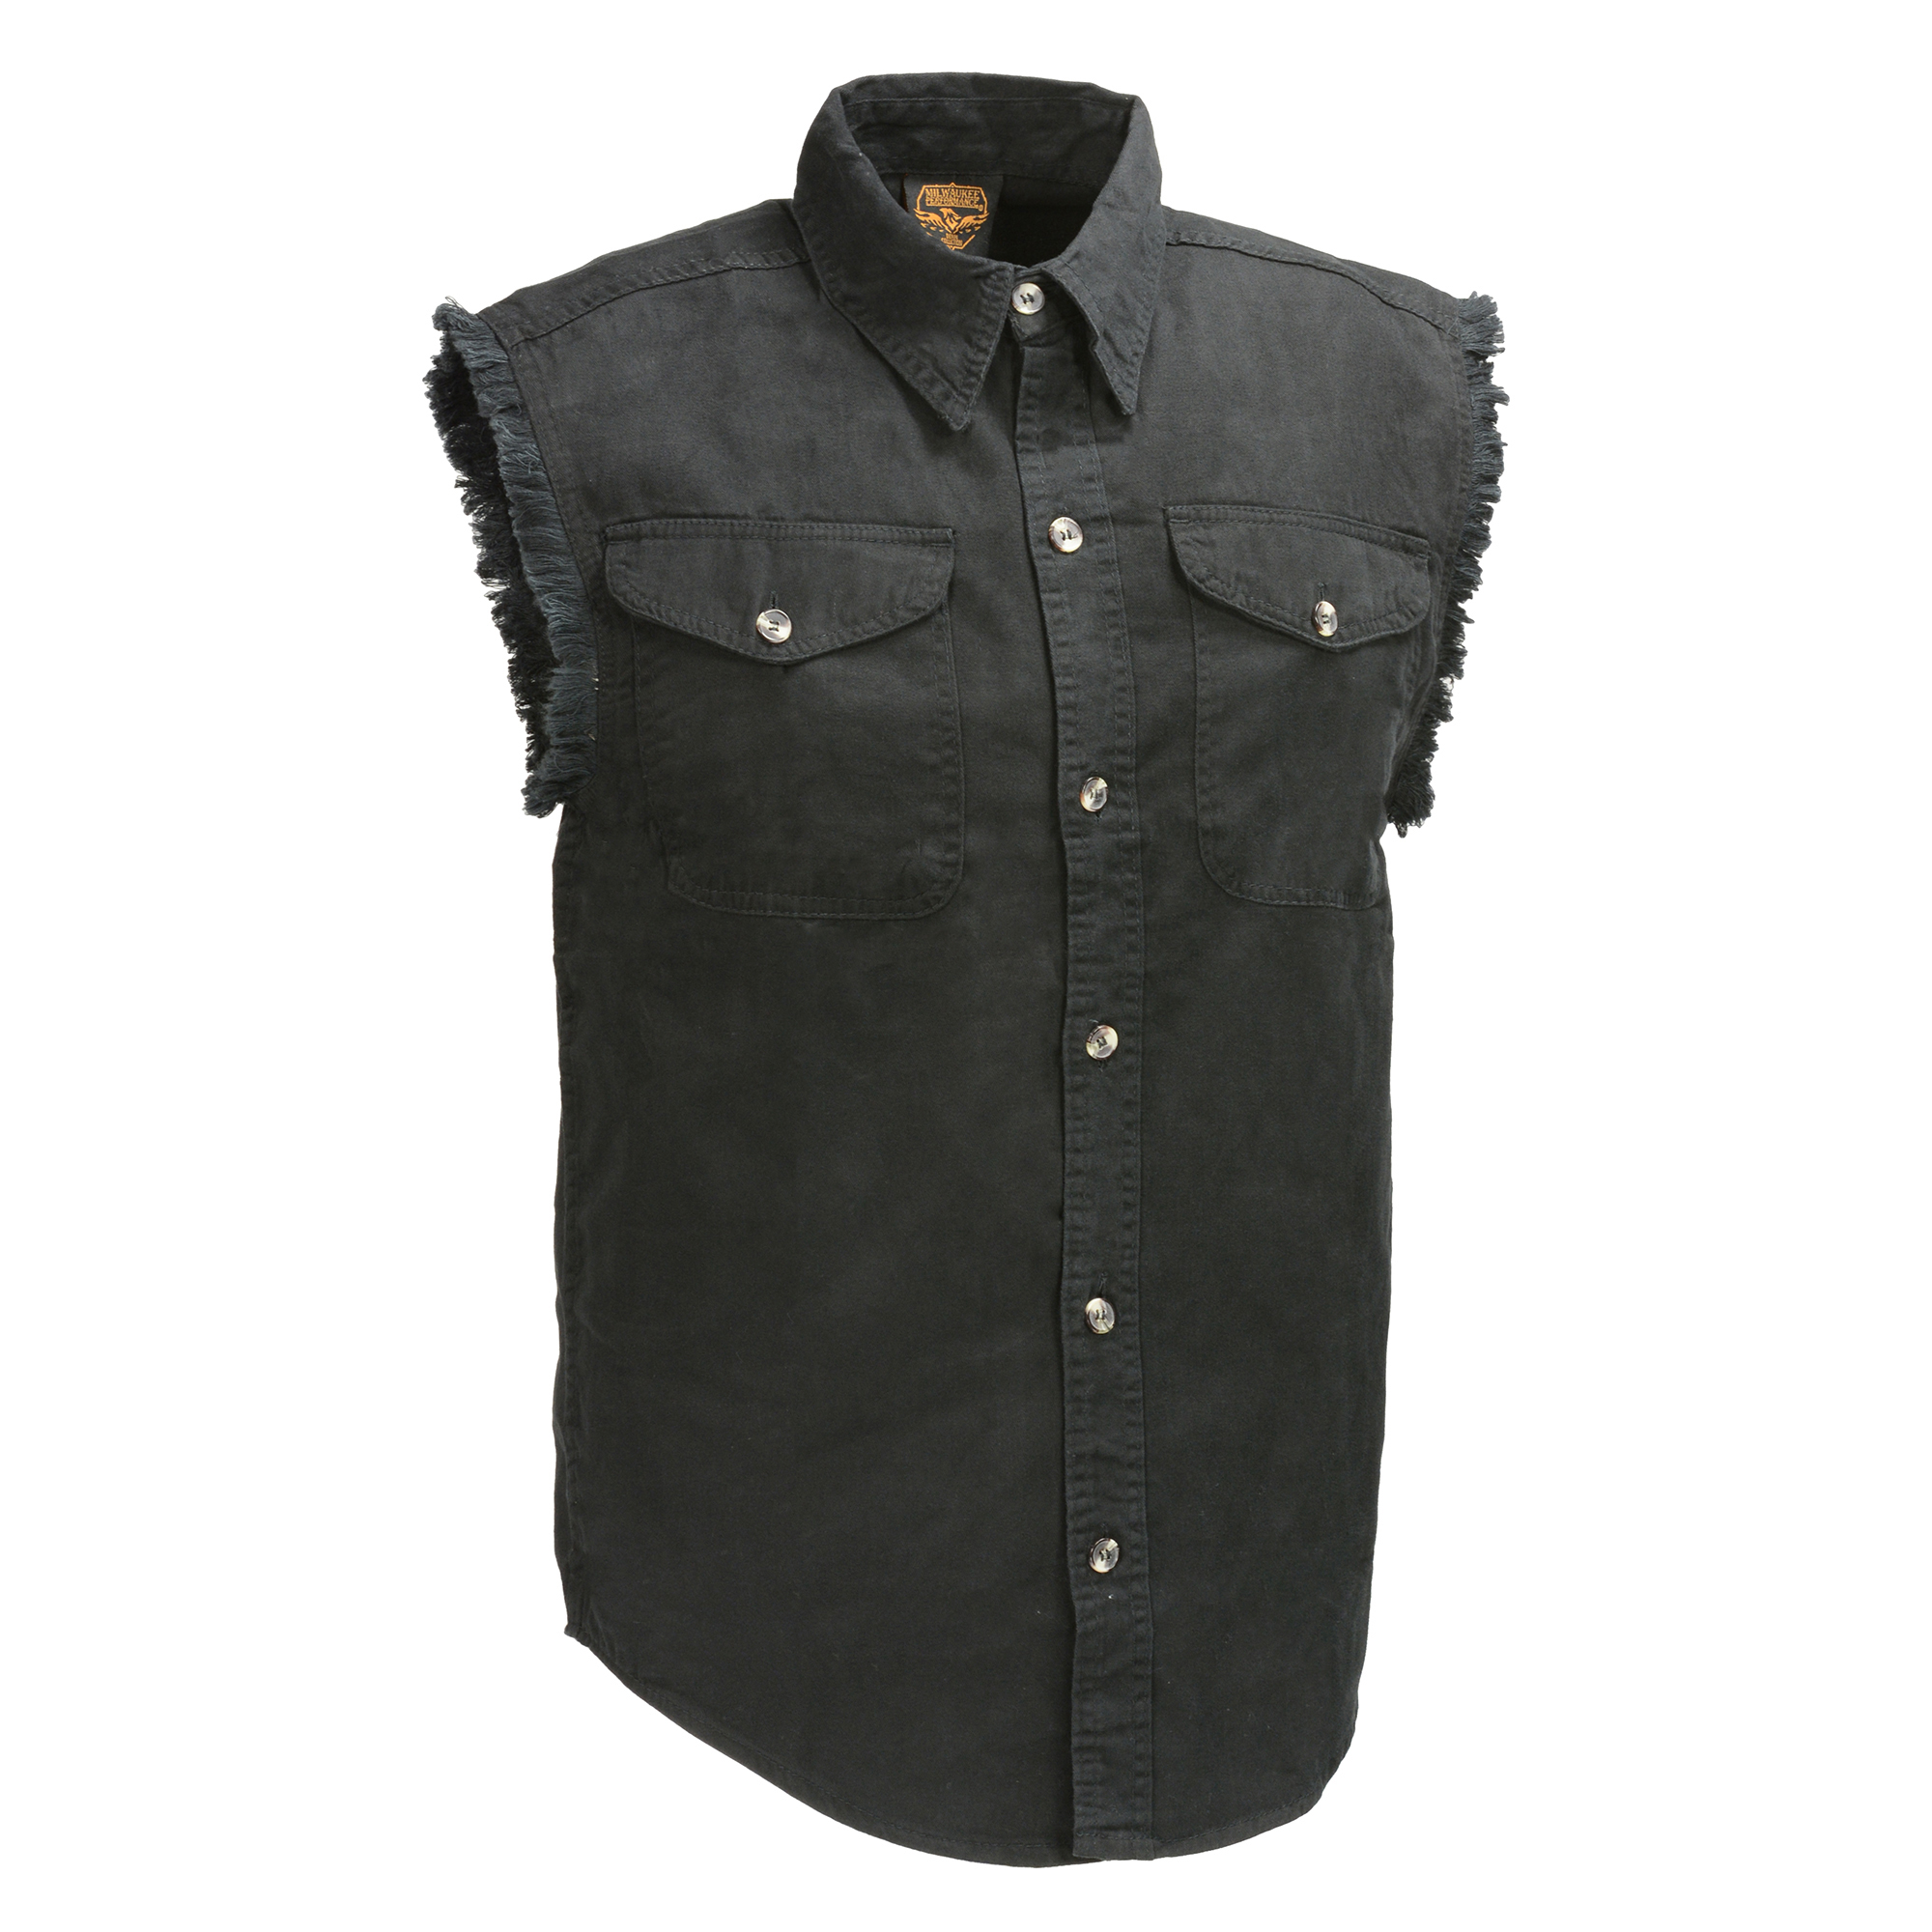 0e1f8ba7d3f DM1002-BLACK - Men s Black Lightweight Sleeveless Denim Shirt